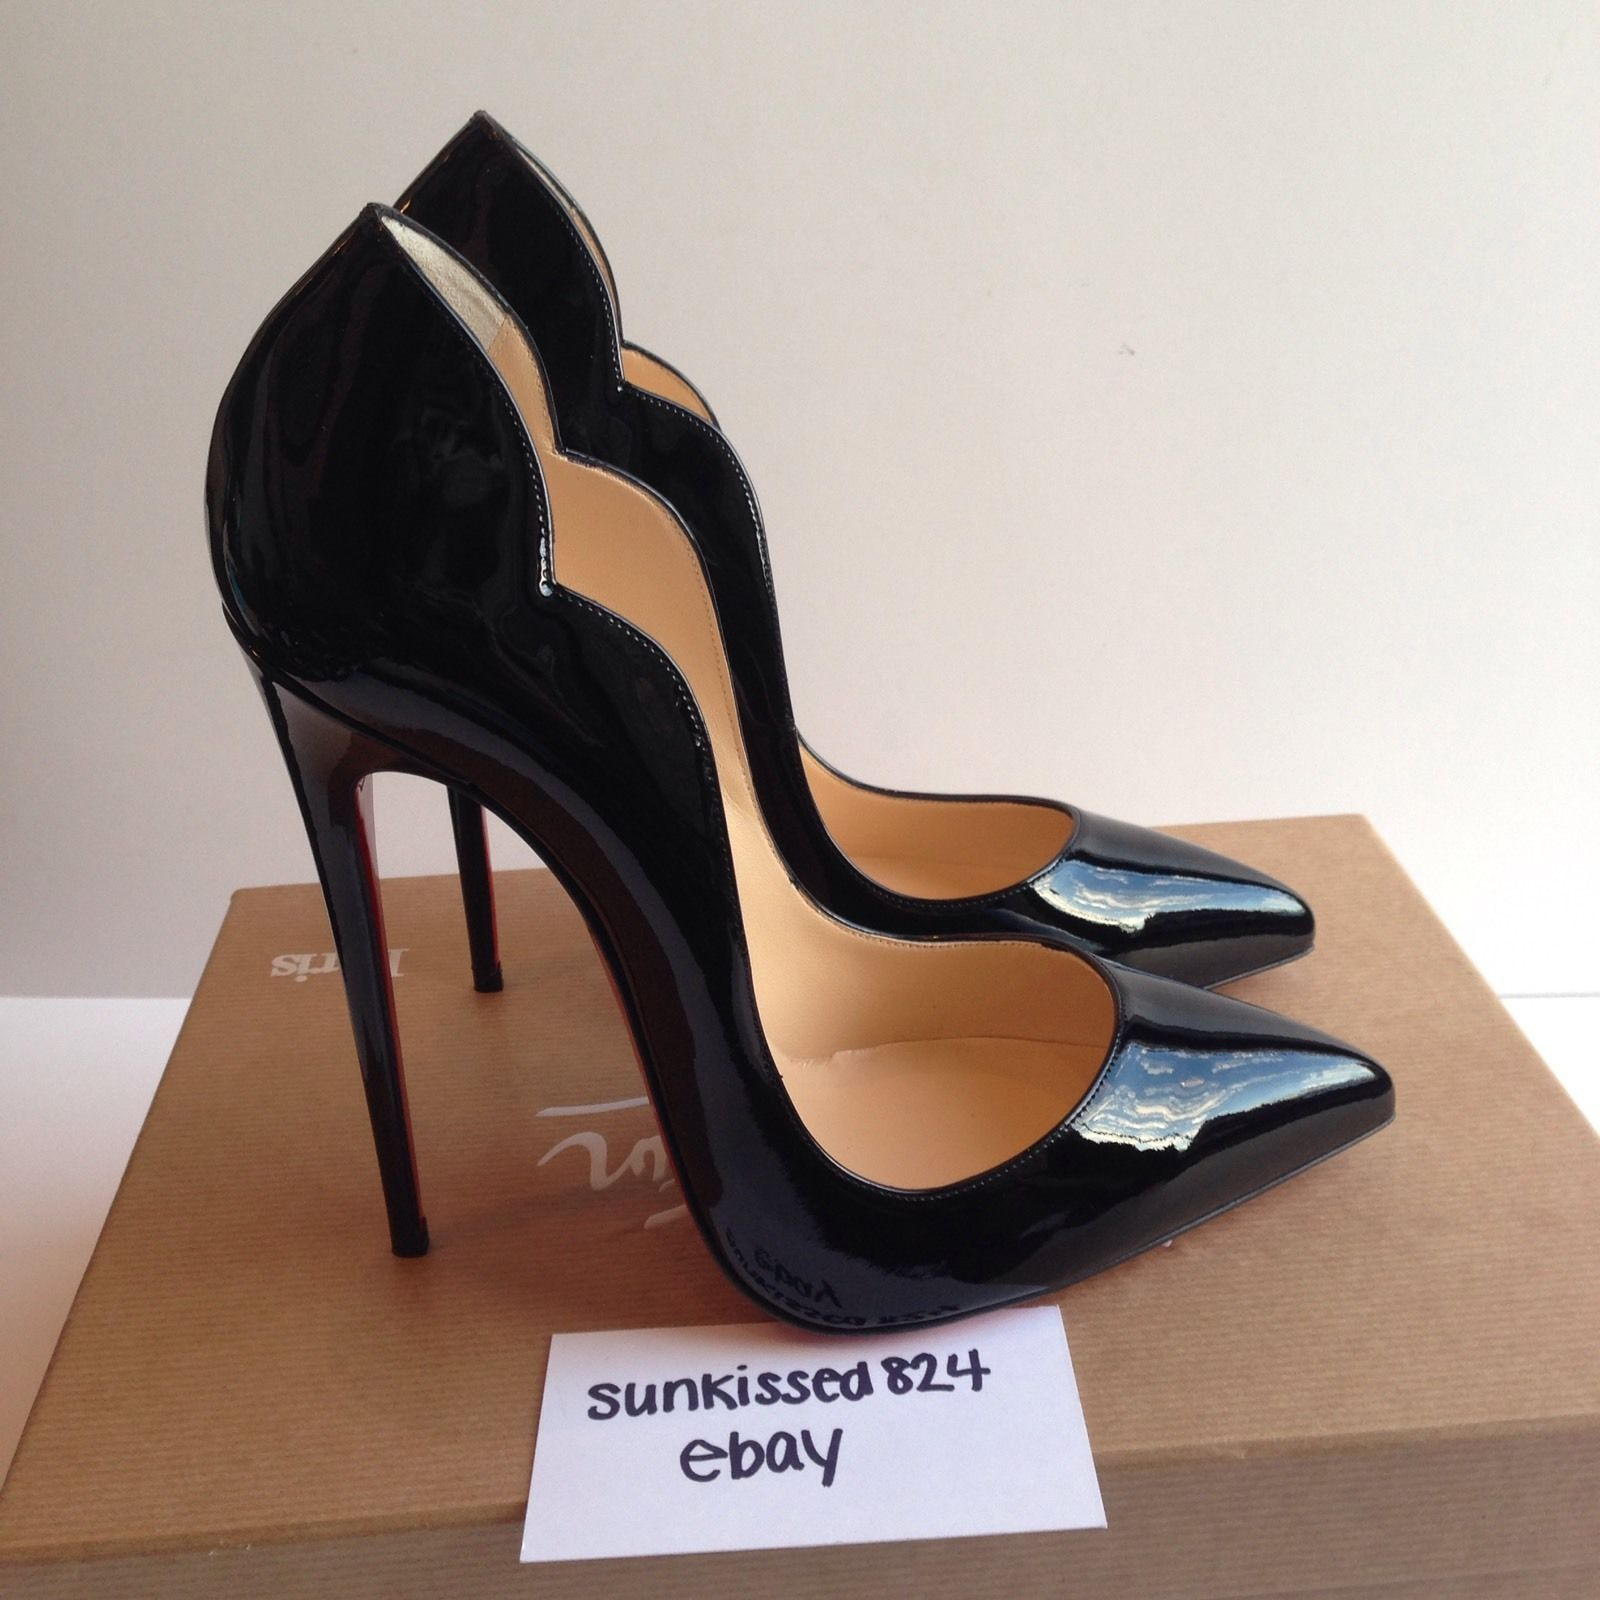 4e40db9bf0ad Christian Louboutin HOT CHICK 130mm Scalloped Black Patent Pumps Size 39.5